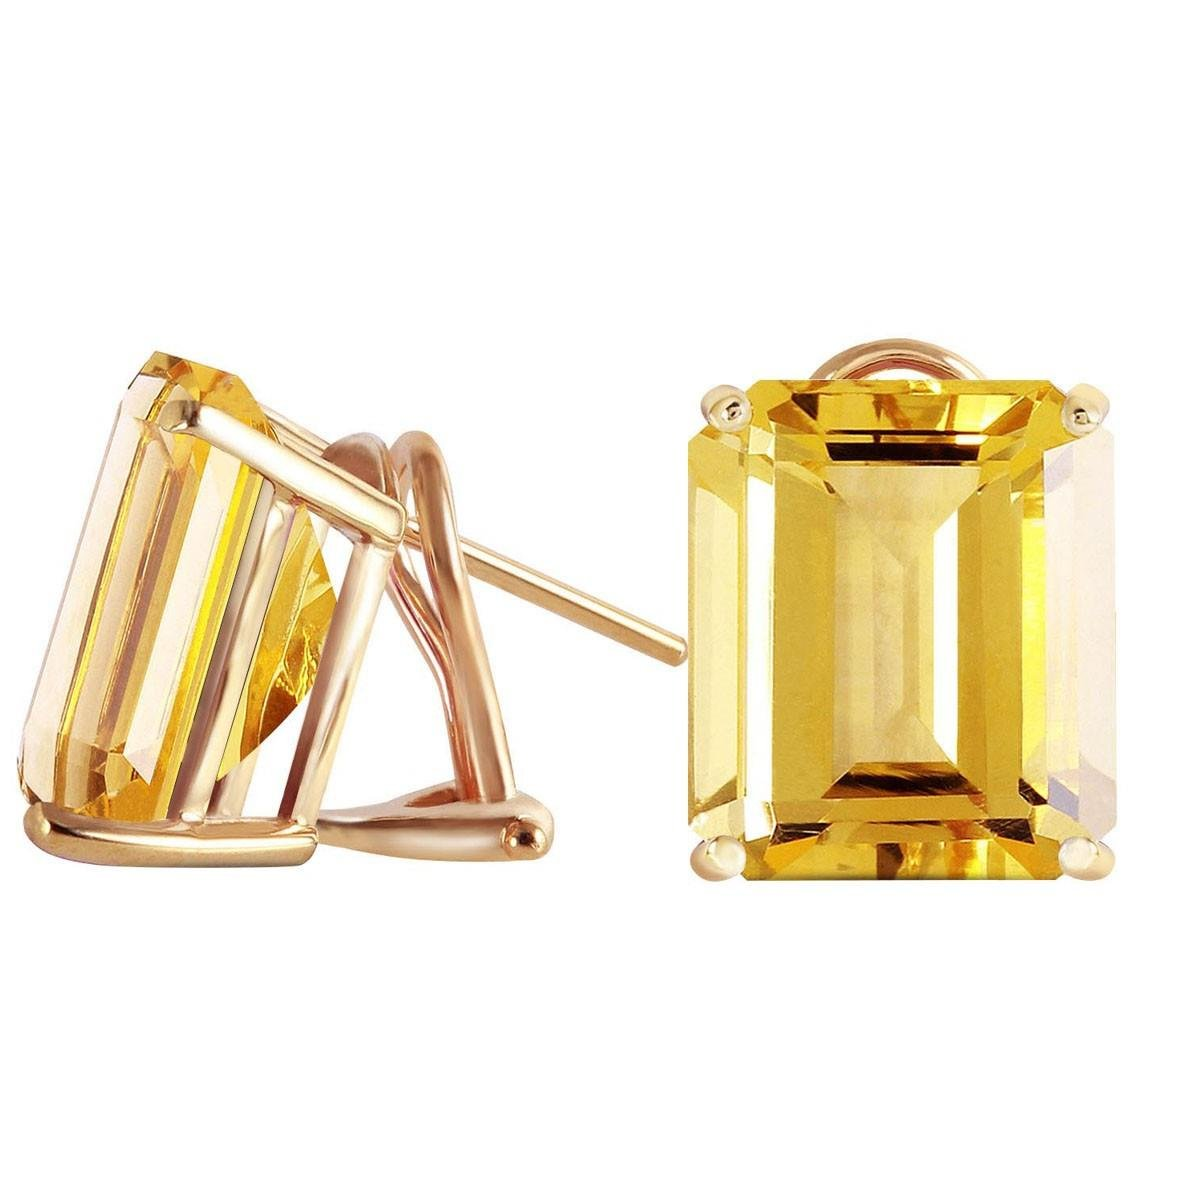 Large Emerald Cut Citrine Omega Back Earrings 14k Yellow Gold 2068-Y